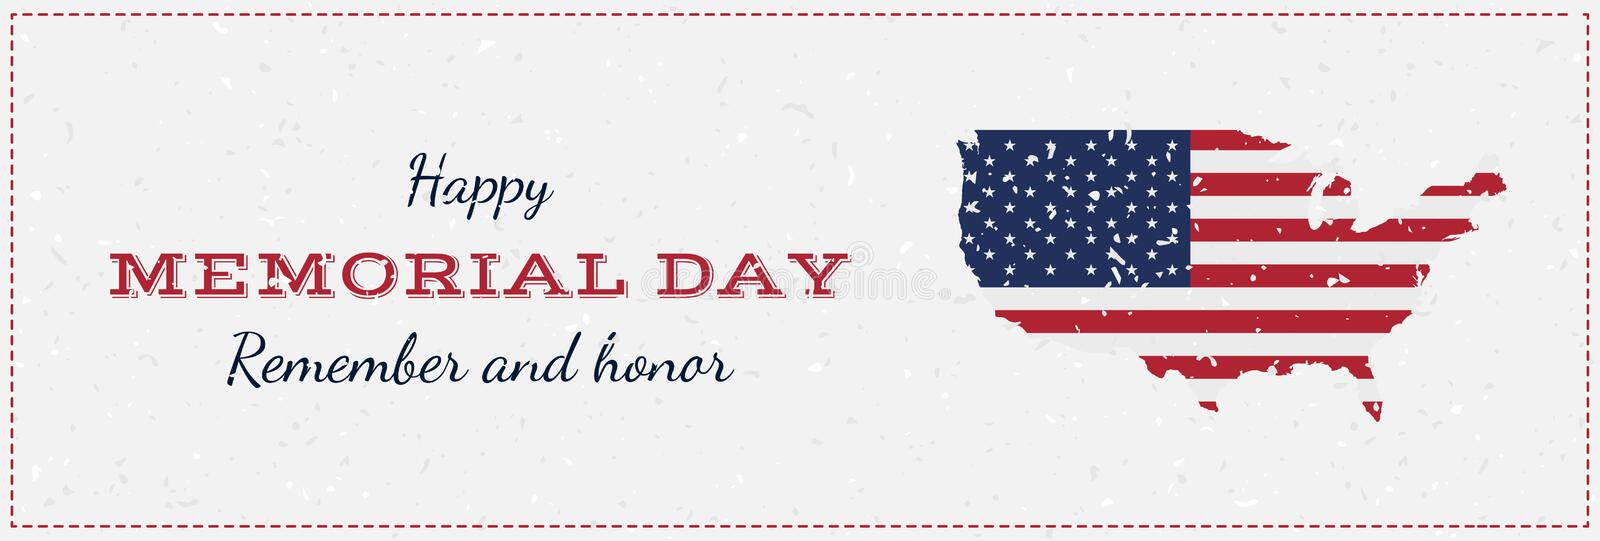 Happy memorial day with USA map. Vintage retro greeting card with flag and old-style texture. National American holiday event. Fla. T Vector illustration EPS10 vector illustration